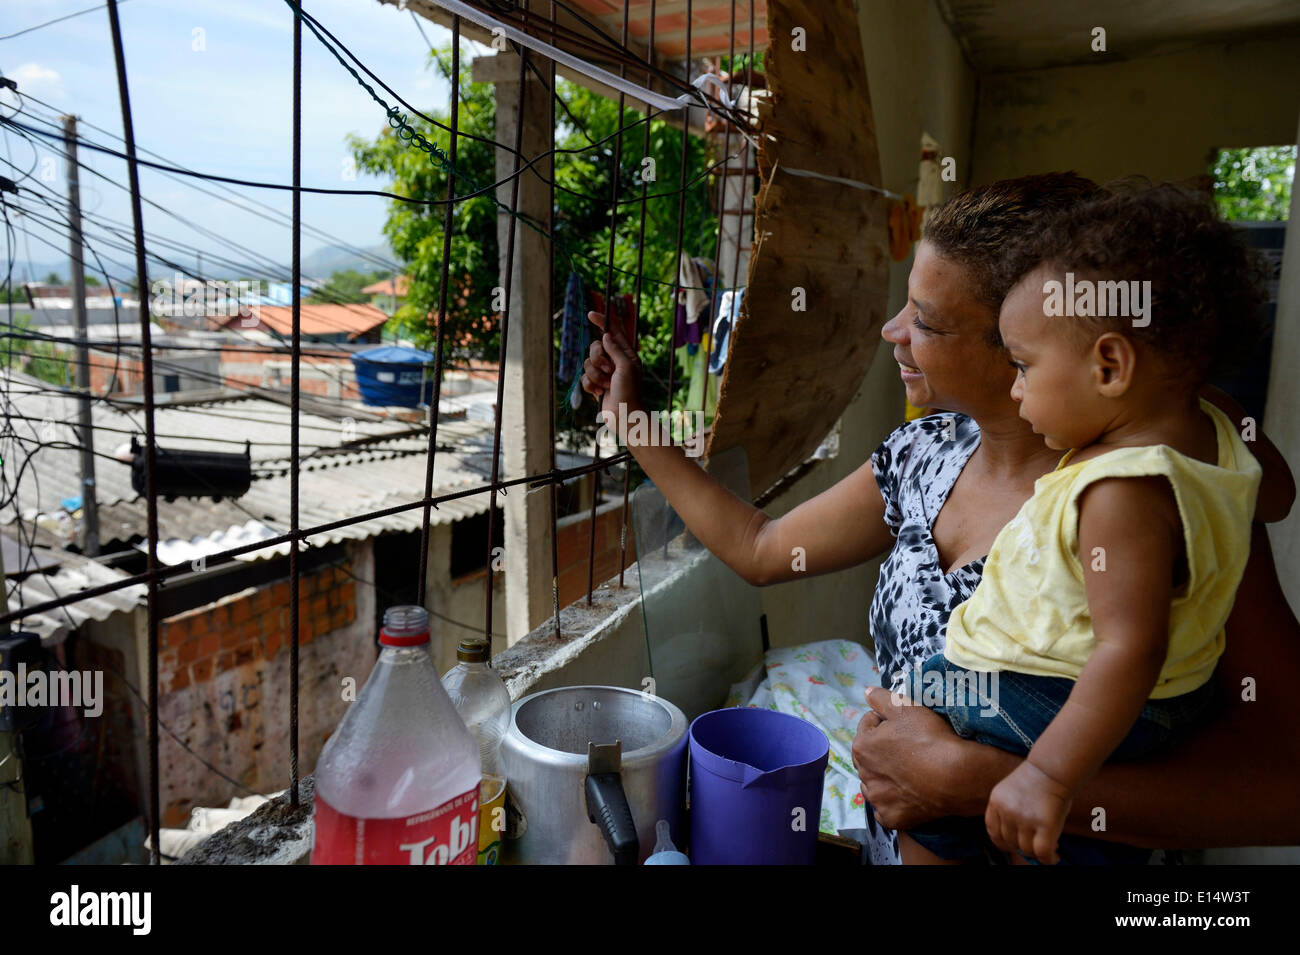 Woman, 38, with her son, 1 year, looking out the window of her house in the Senador Camara favela, Rio de Janeiro - Stock Image